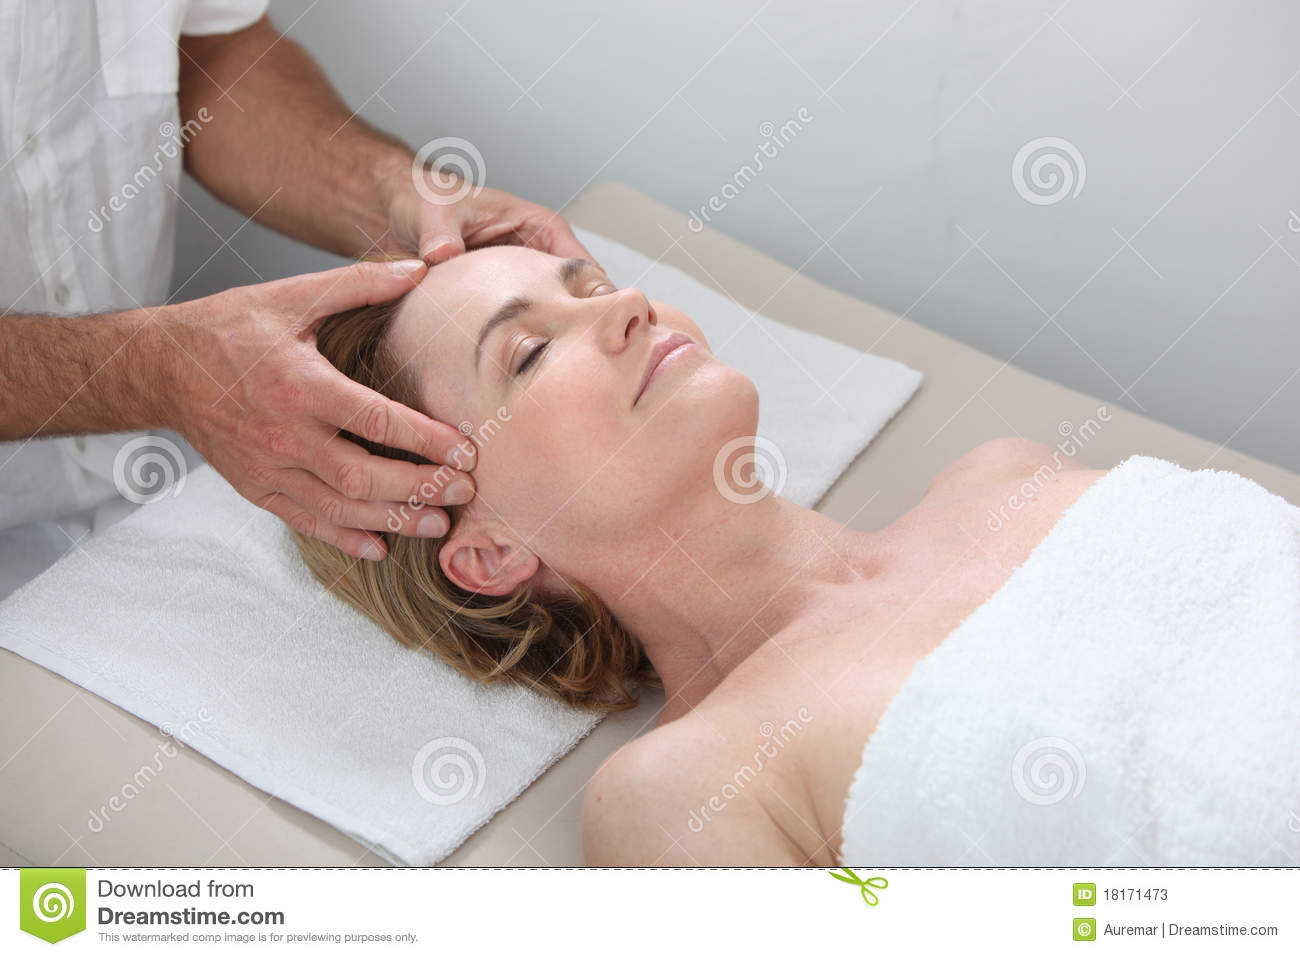 How adding facial massage to your cleansing routine